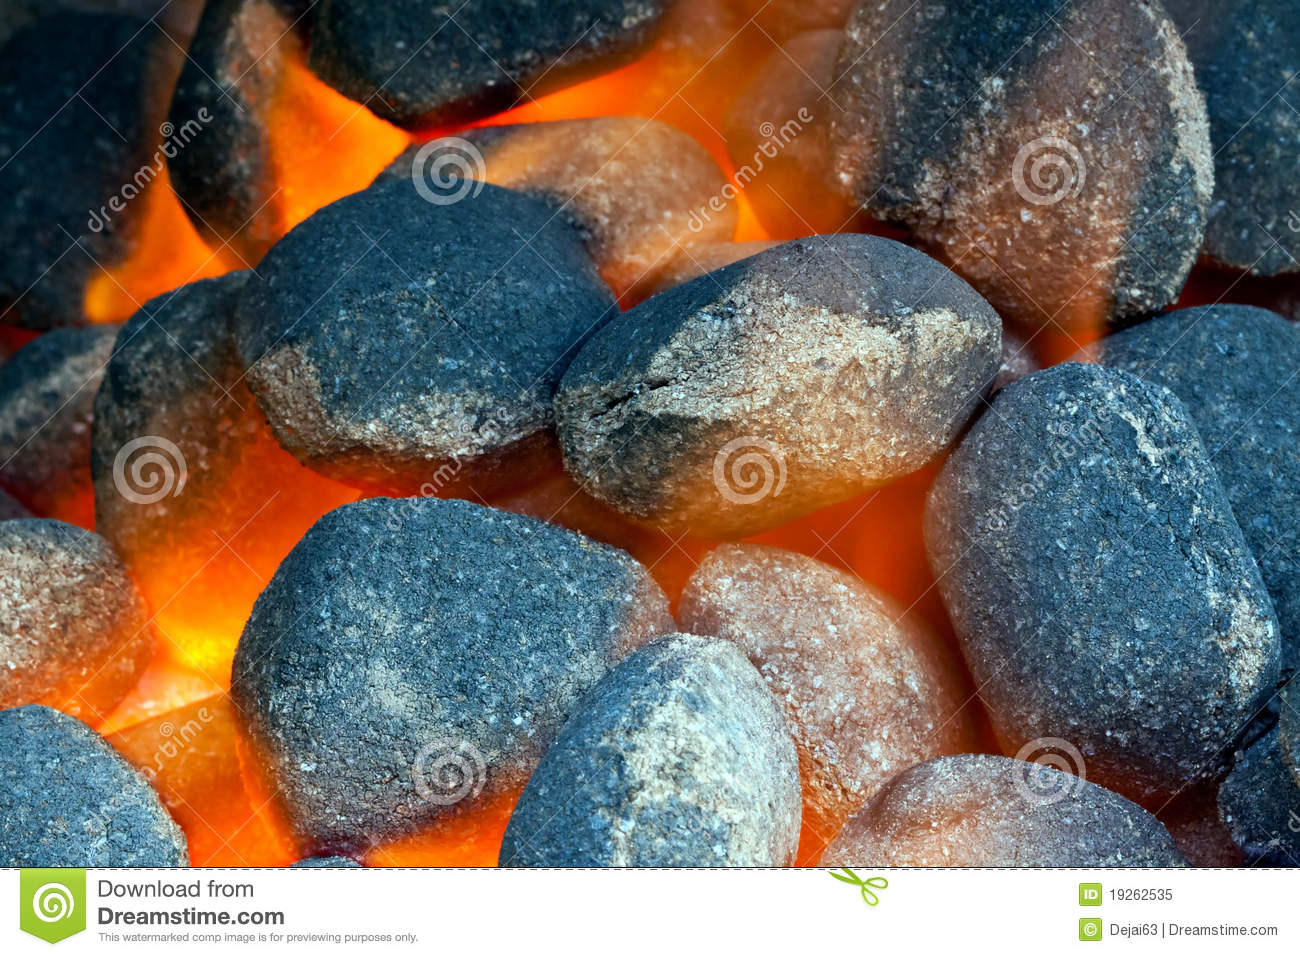 paper charcoal briquettes Many charcoal briquettes contain additives like coal, borax, sodium  this  youtube video gives instructions for turning recycling paper into.